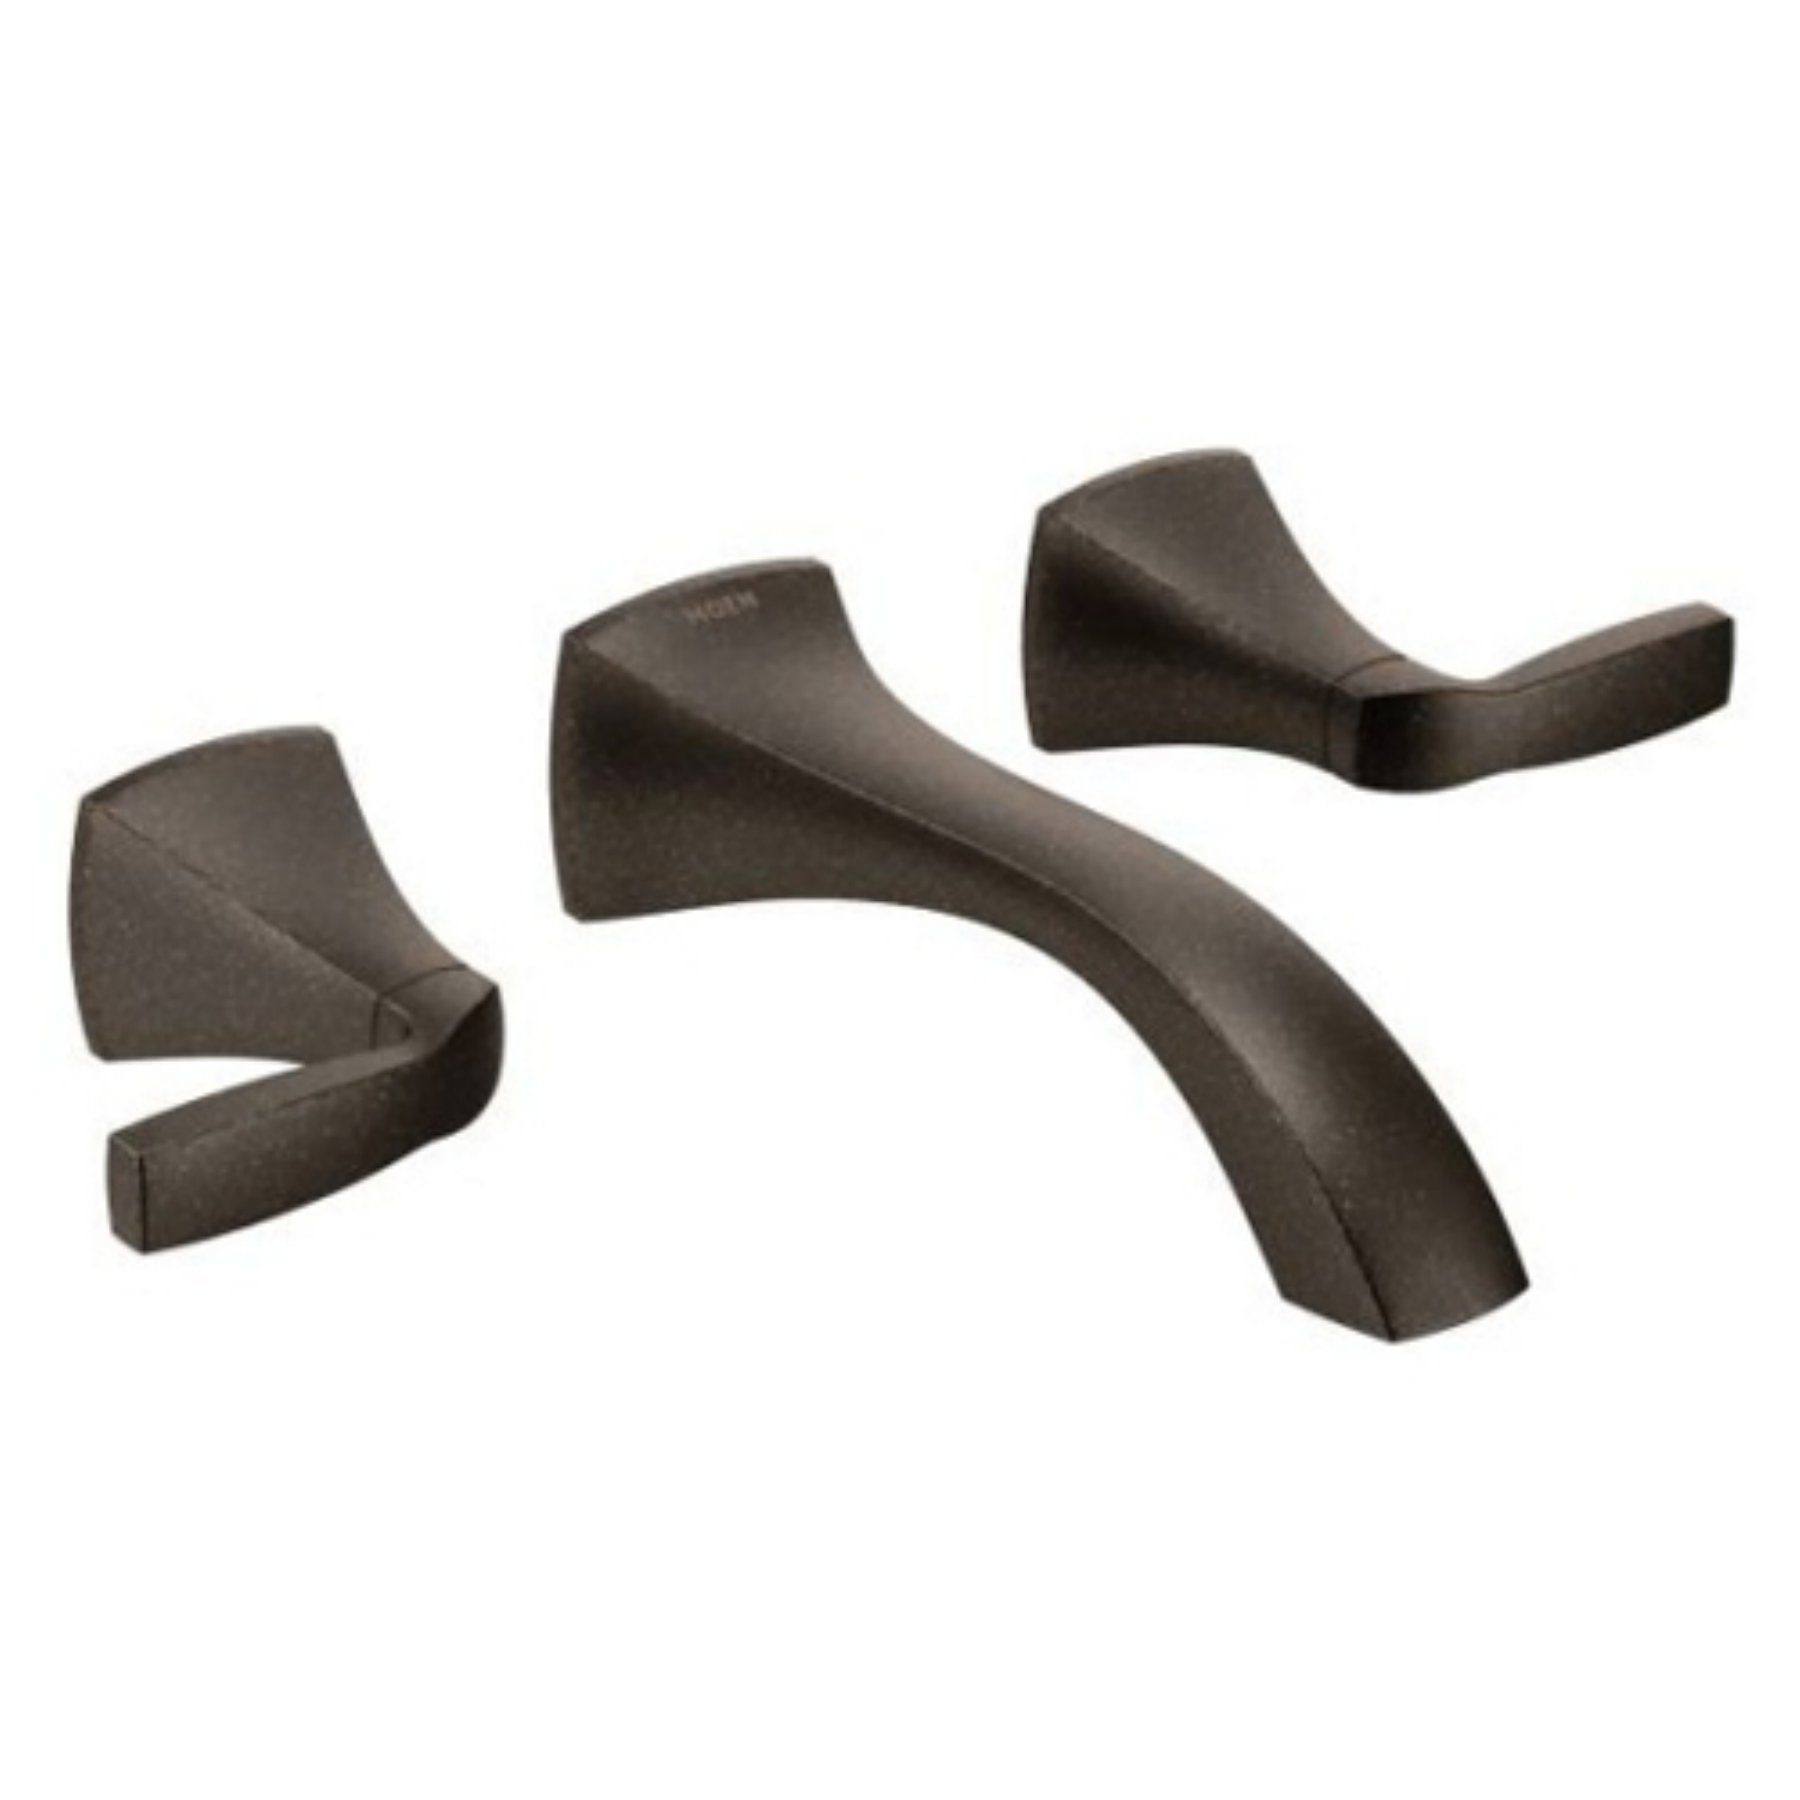 Voss Oil Rubbed Bronze Two Handle Wall Mount Bathroom Faucet